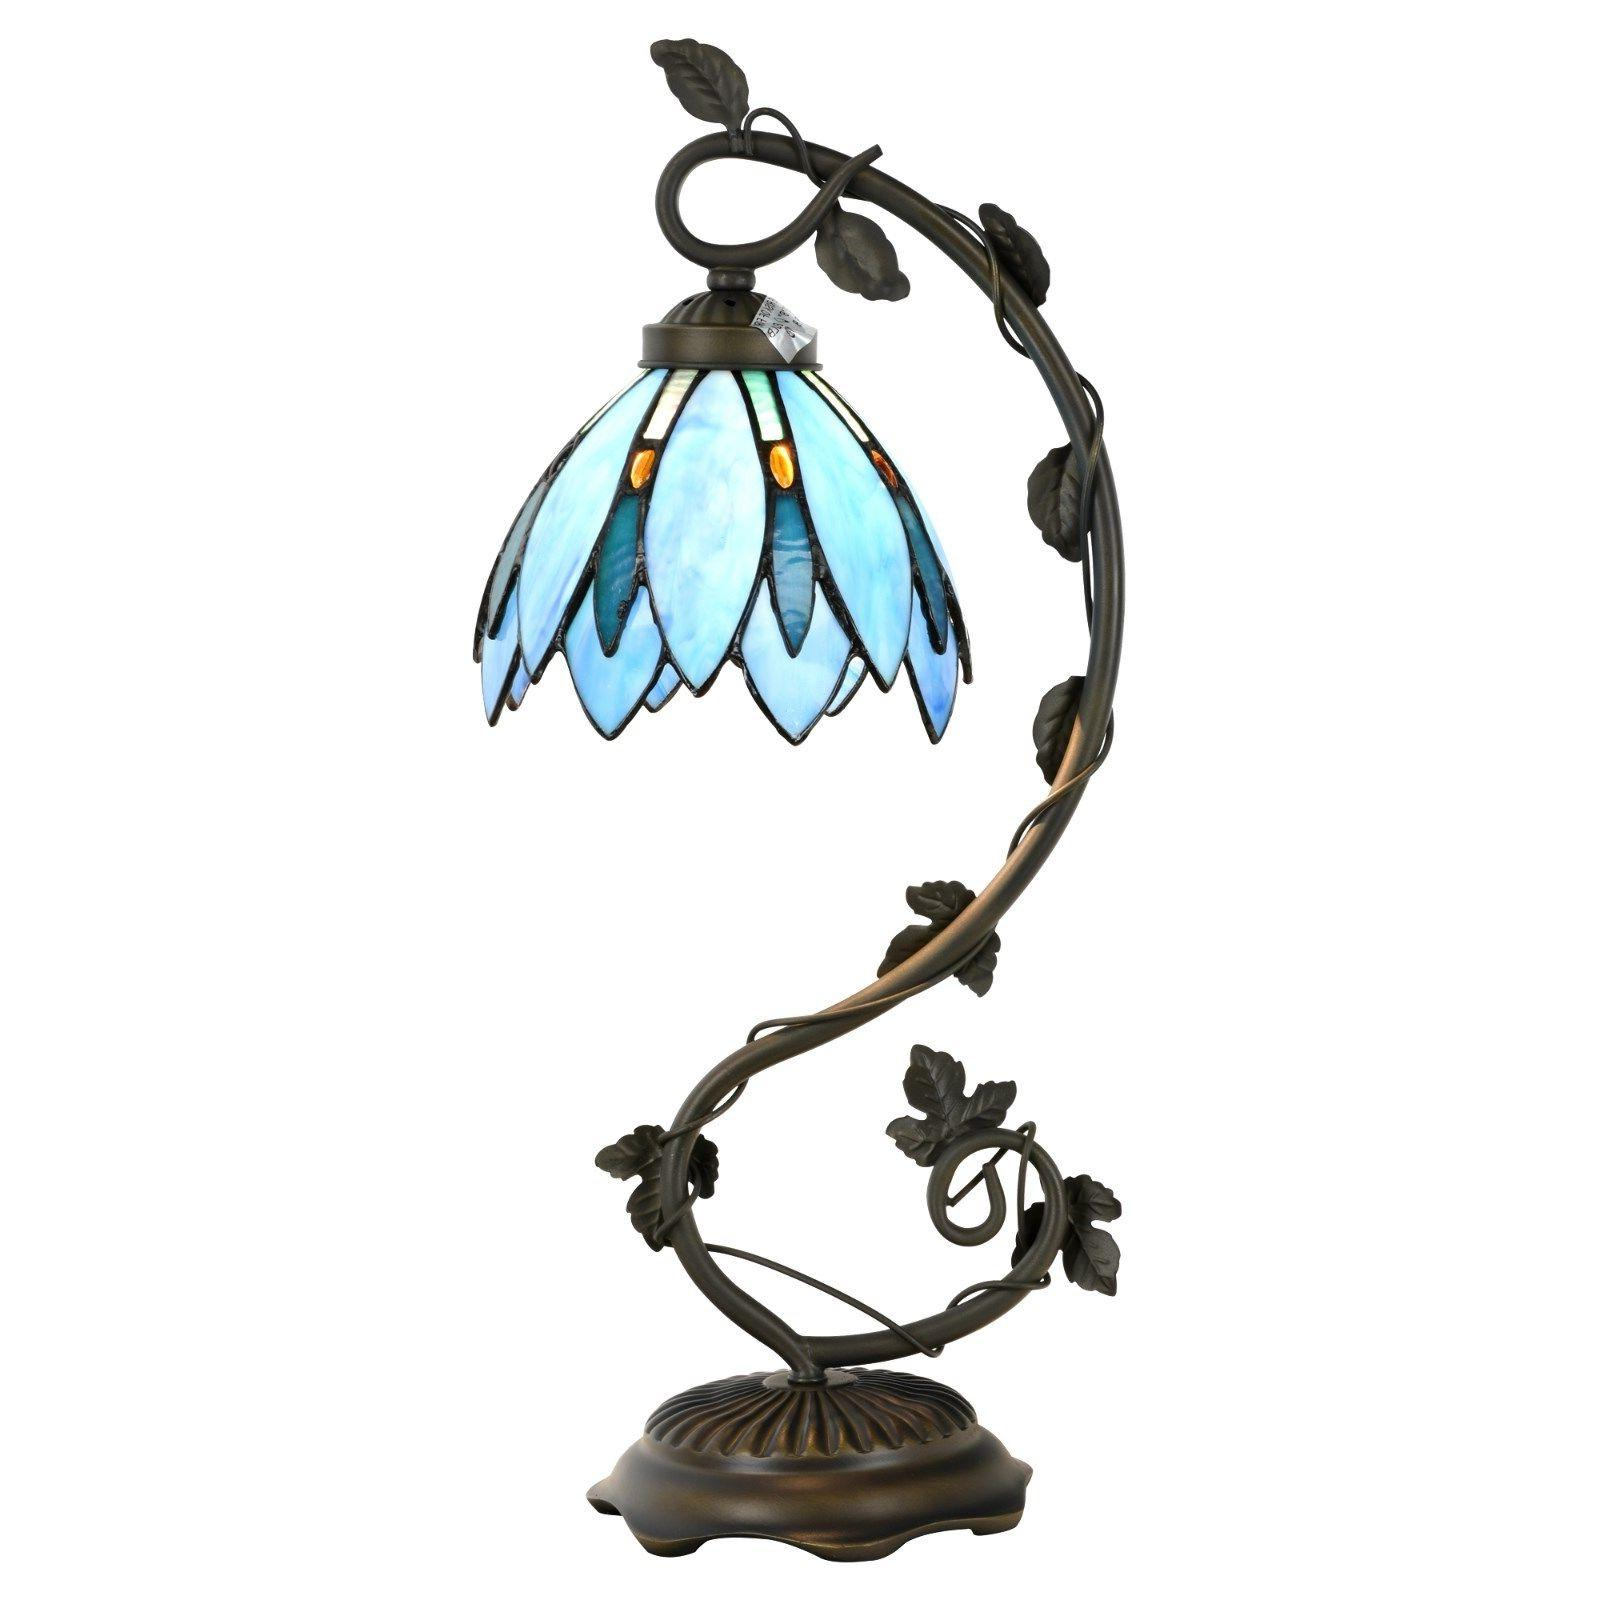 Tiffany Style Lamp Blue Floral Leaf Lotus Shape Arched Stain